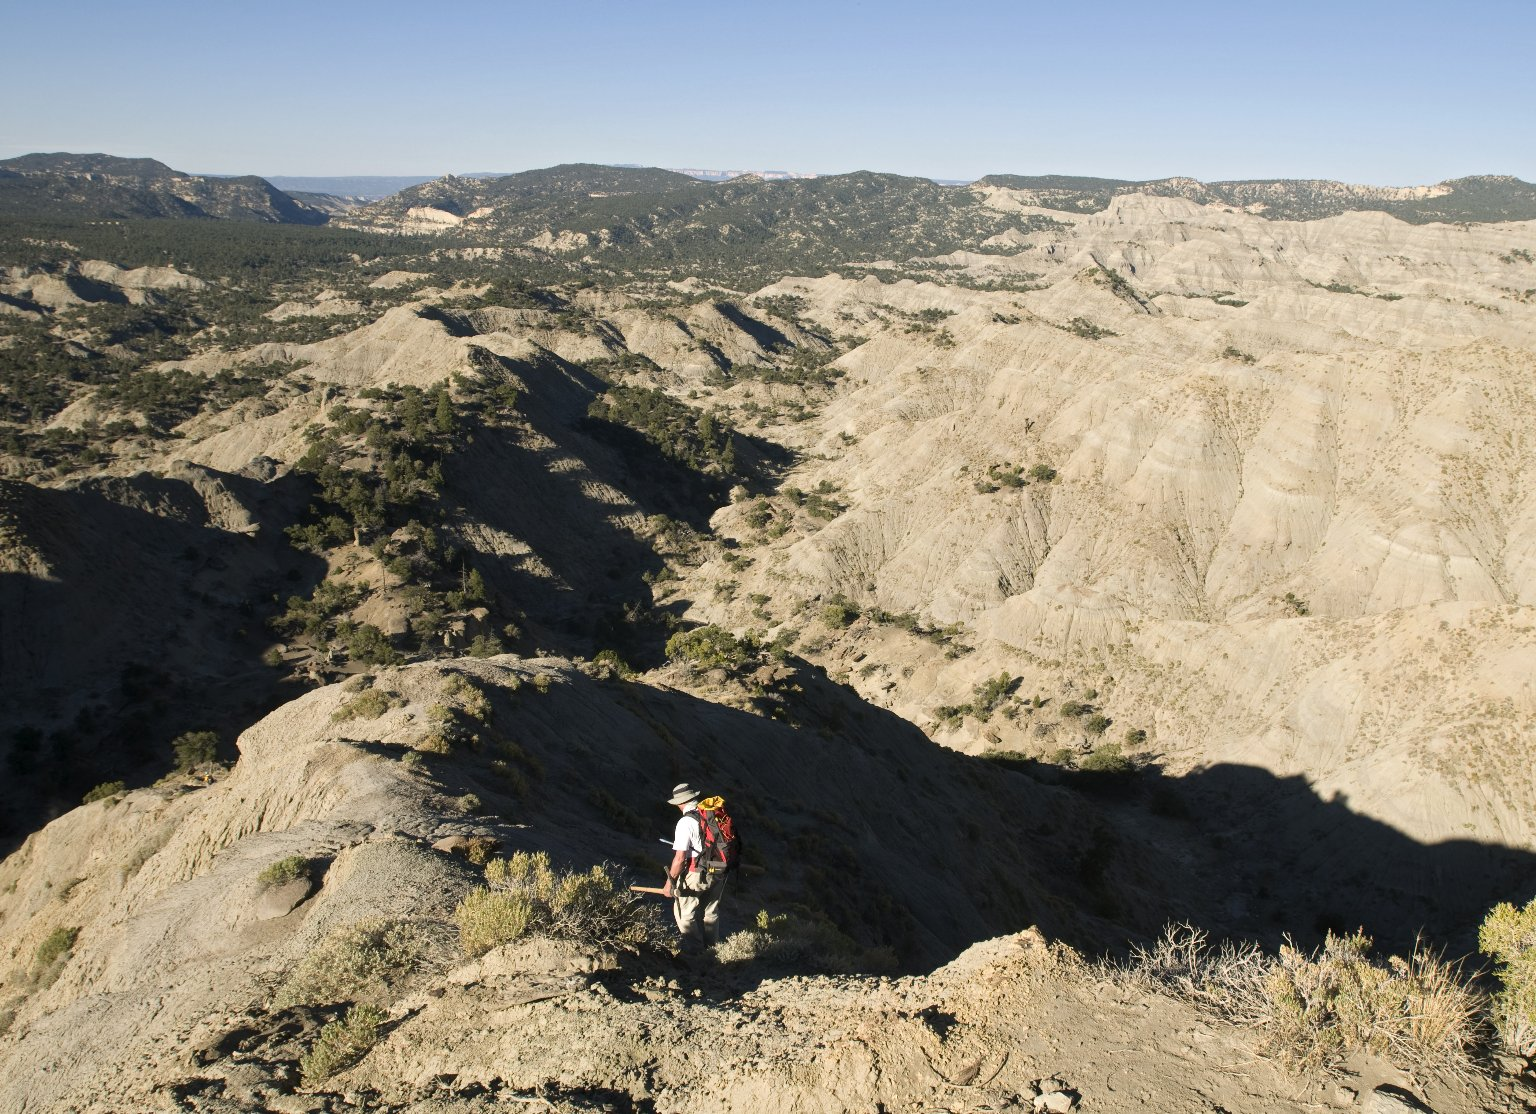 Dr. Kirk Johnson descends to a dig site on the Kaiparowits Plateau.